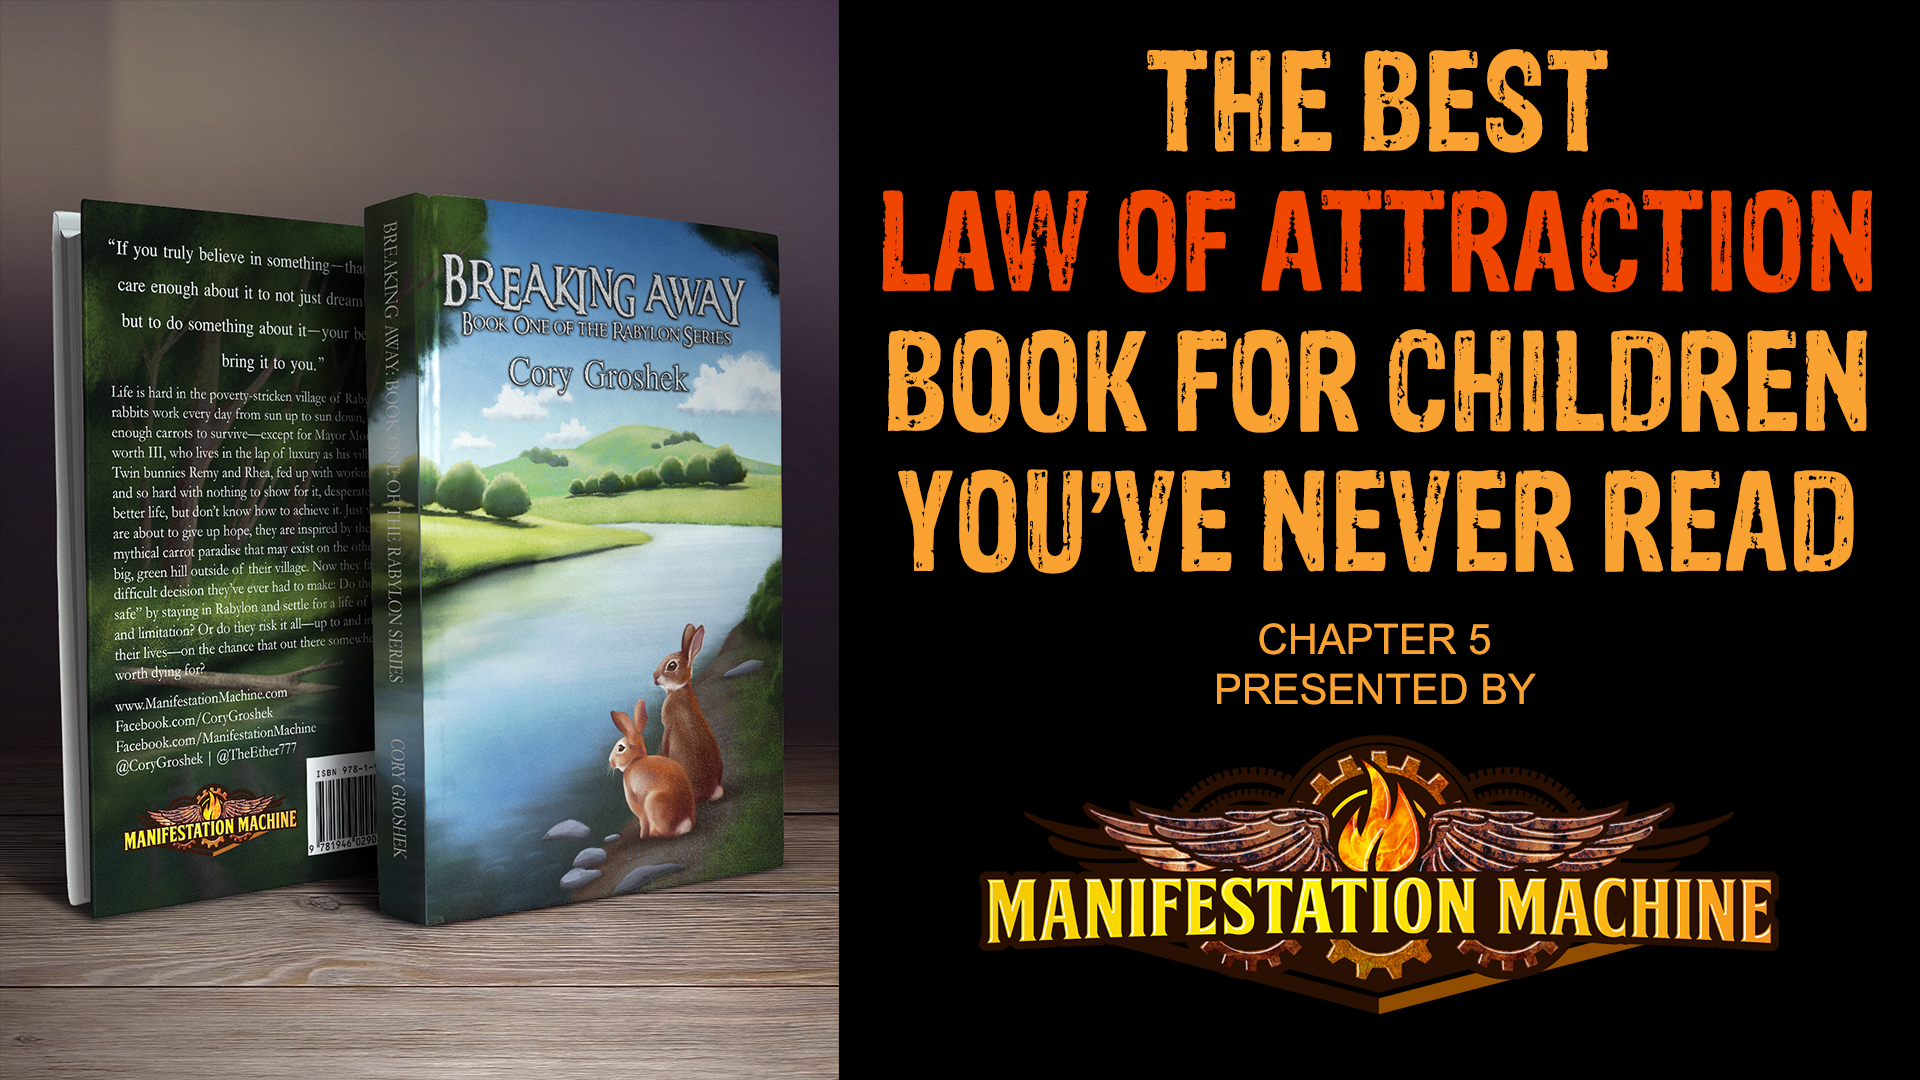 The Best Law of Attraction Book for Children You've Never Read (Chapter 5)